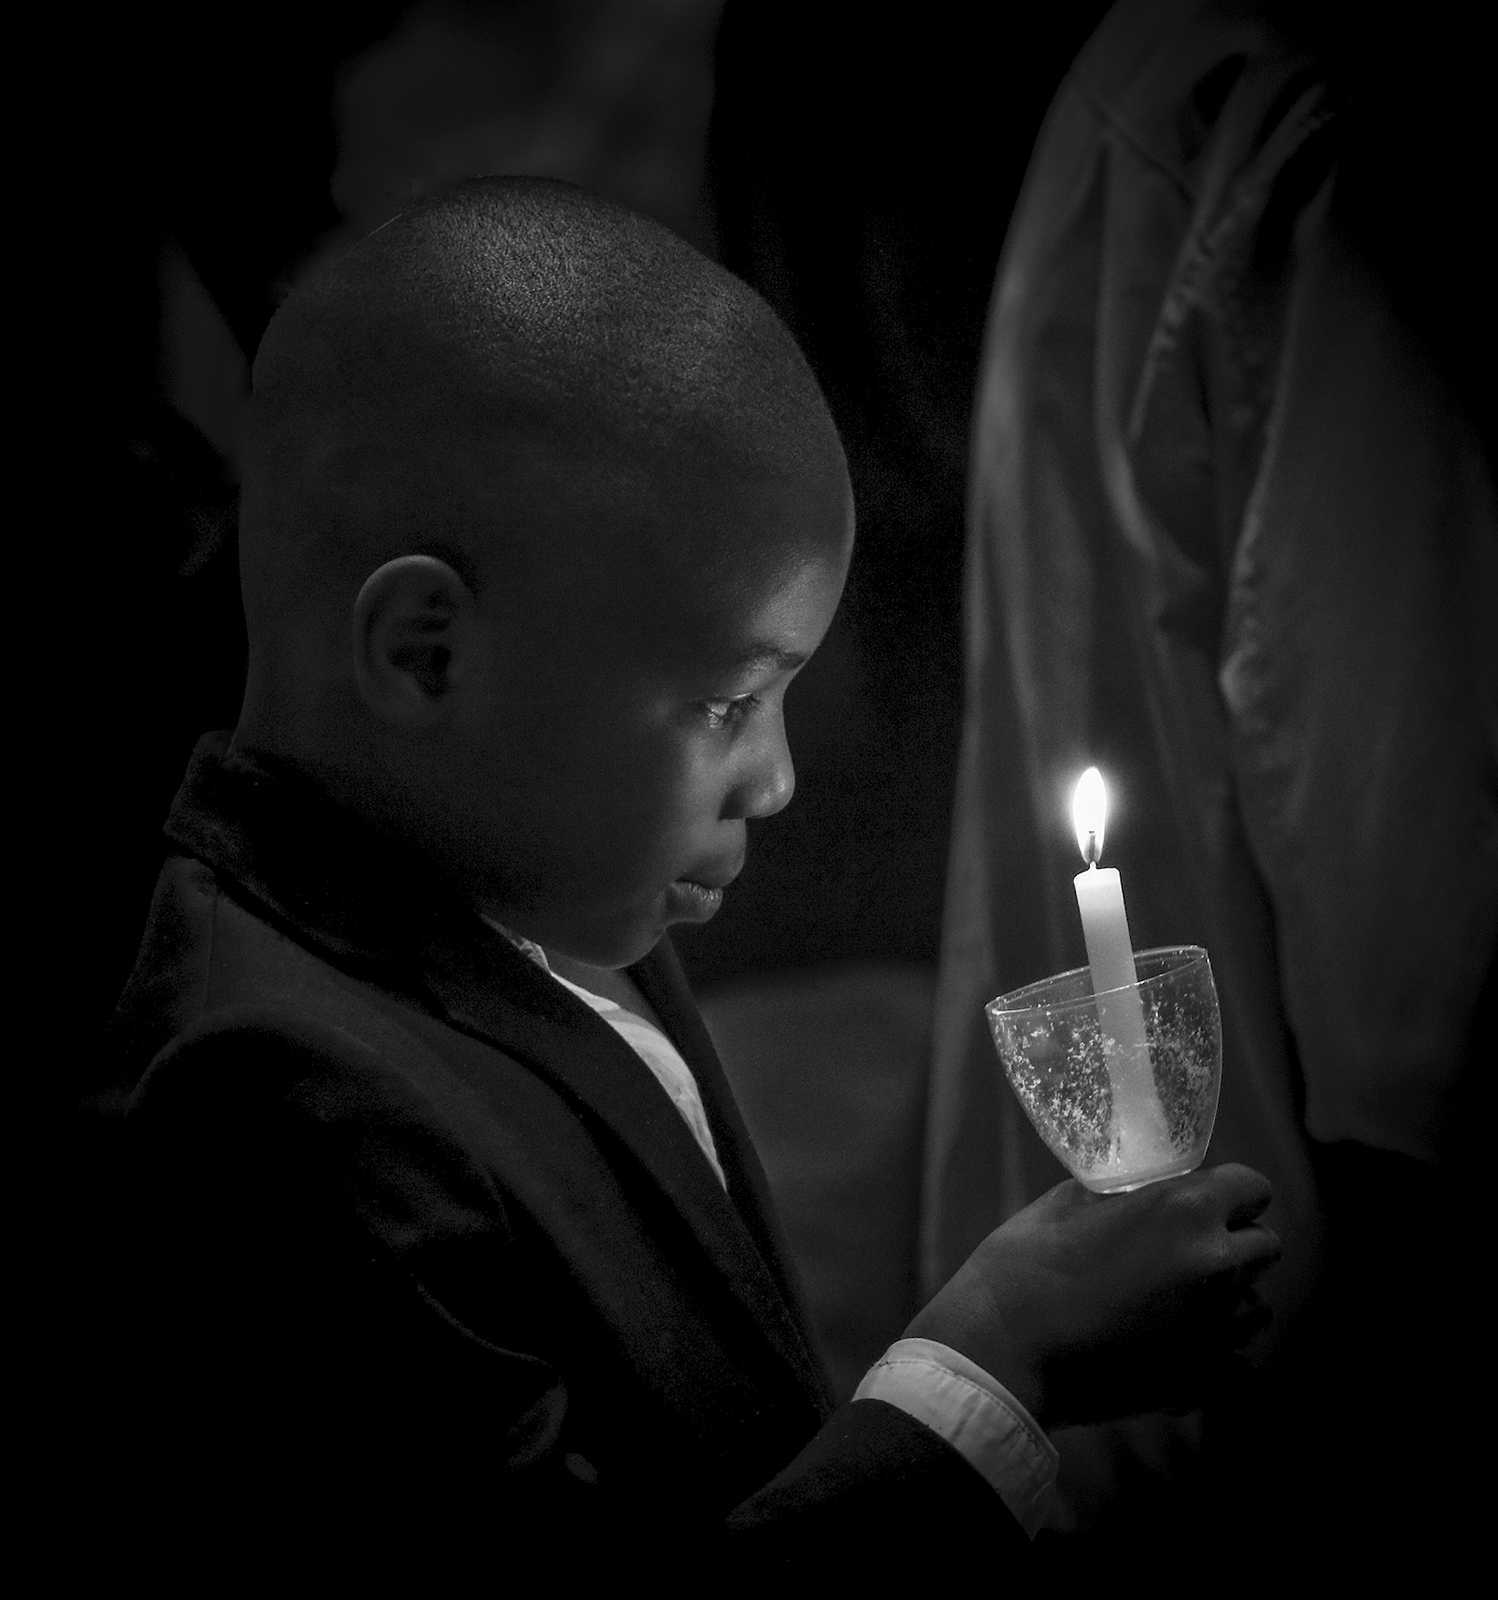 Young Boy Carrying Candle at Easter Ceremony